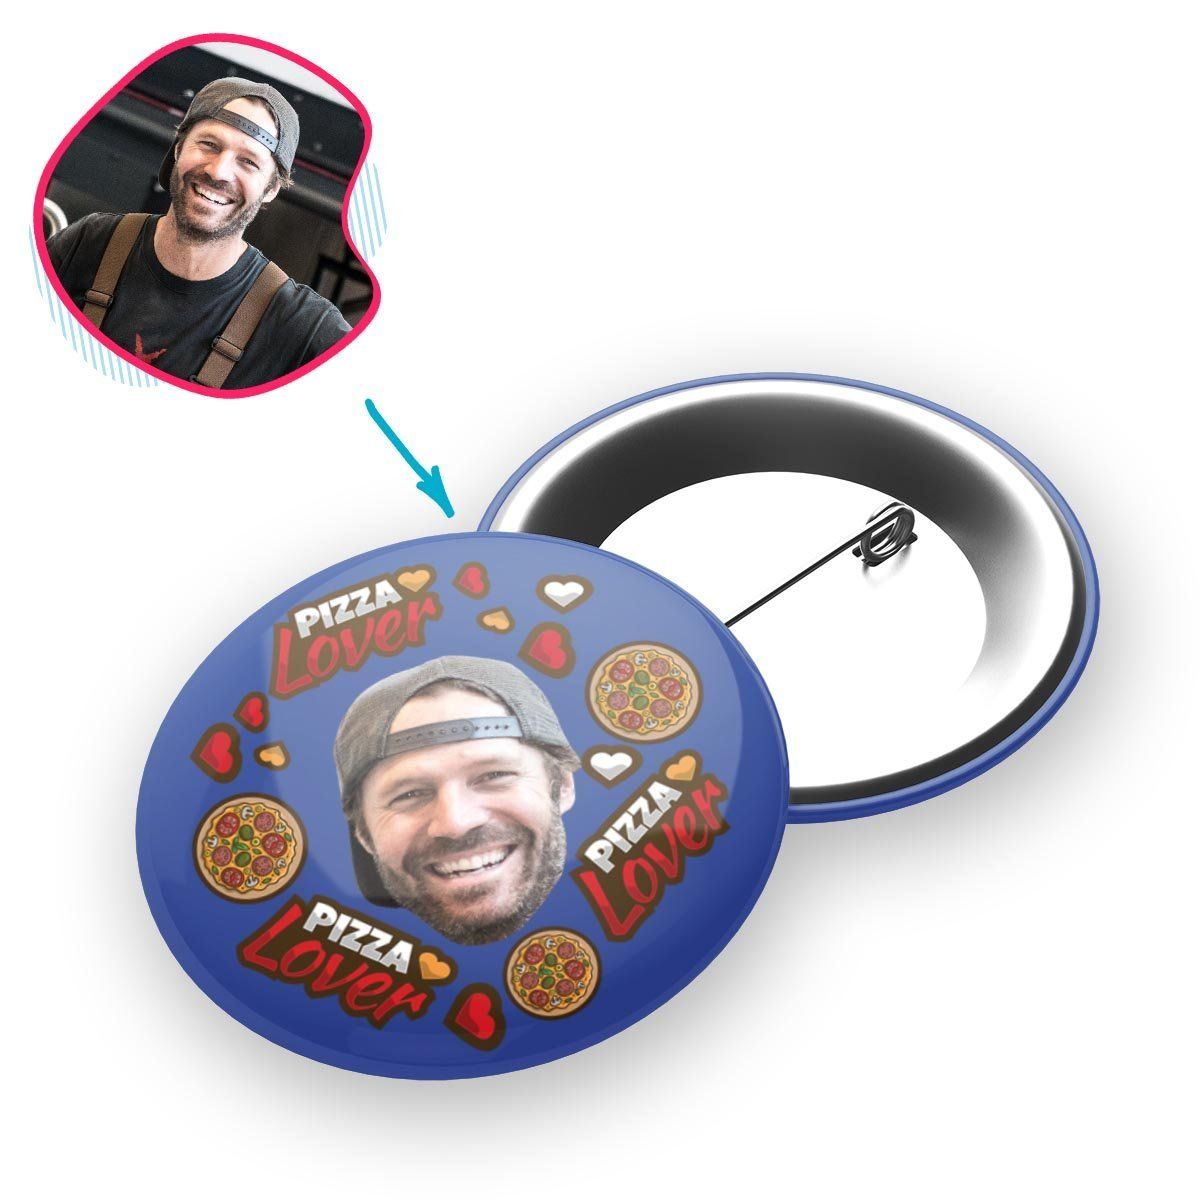 darkblue Pizza Lover pin personalized with photo of face printed on it